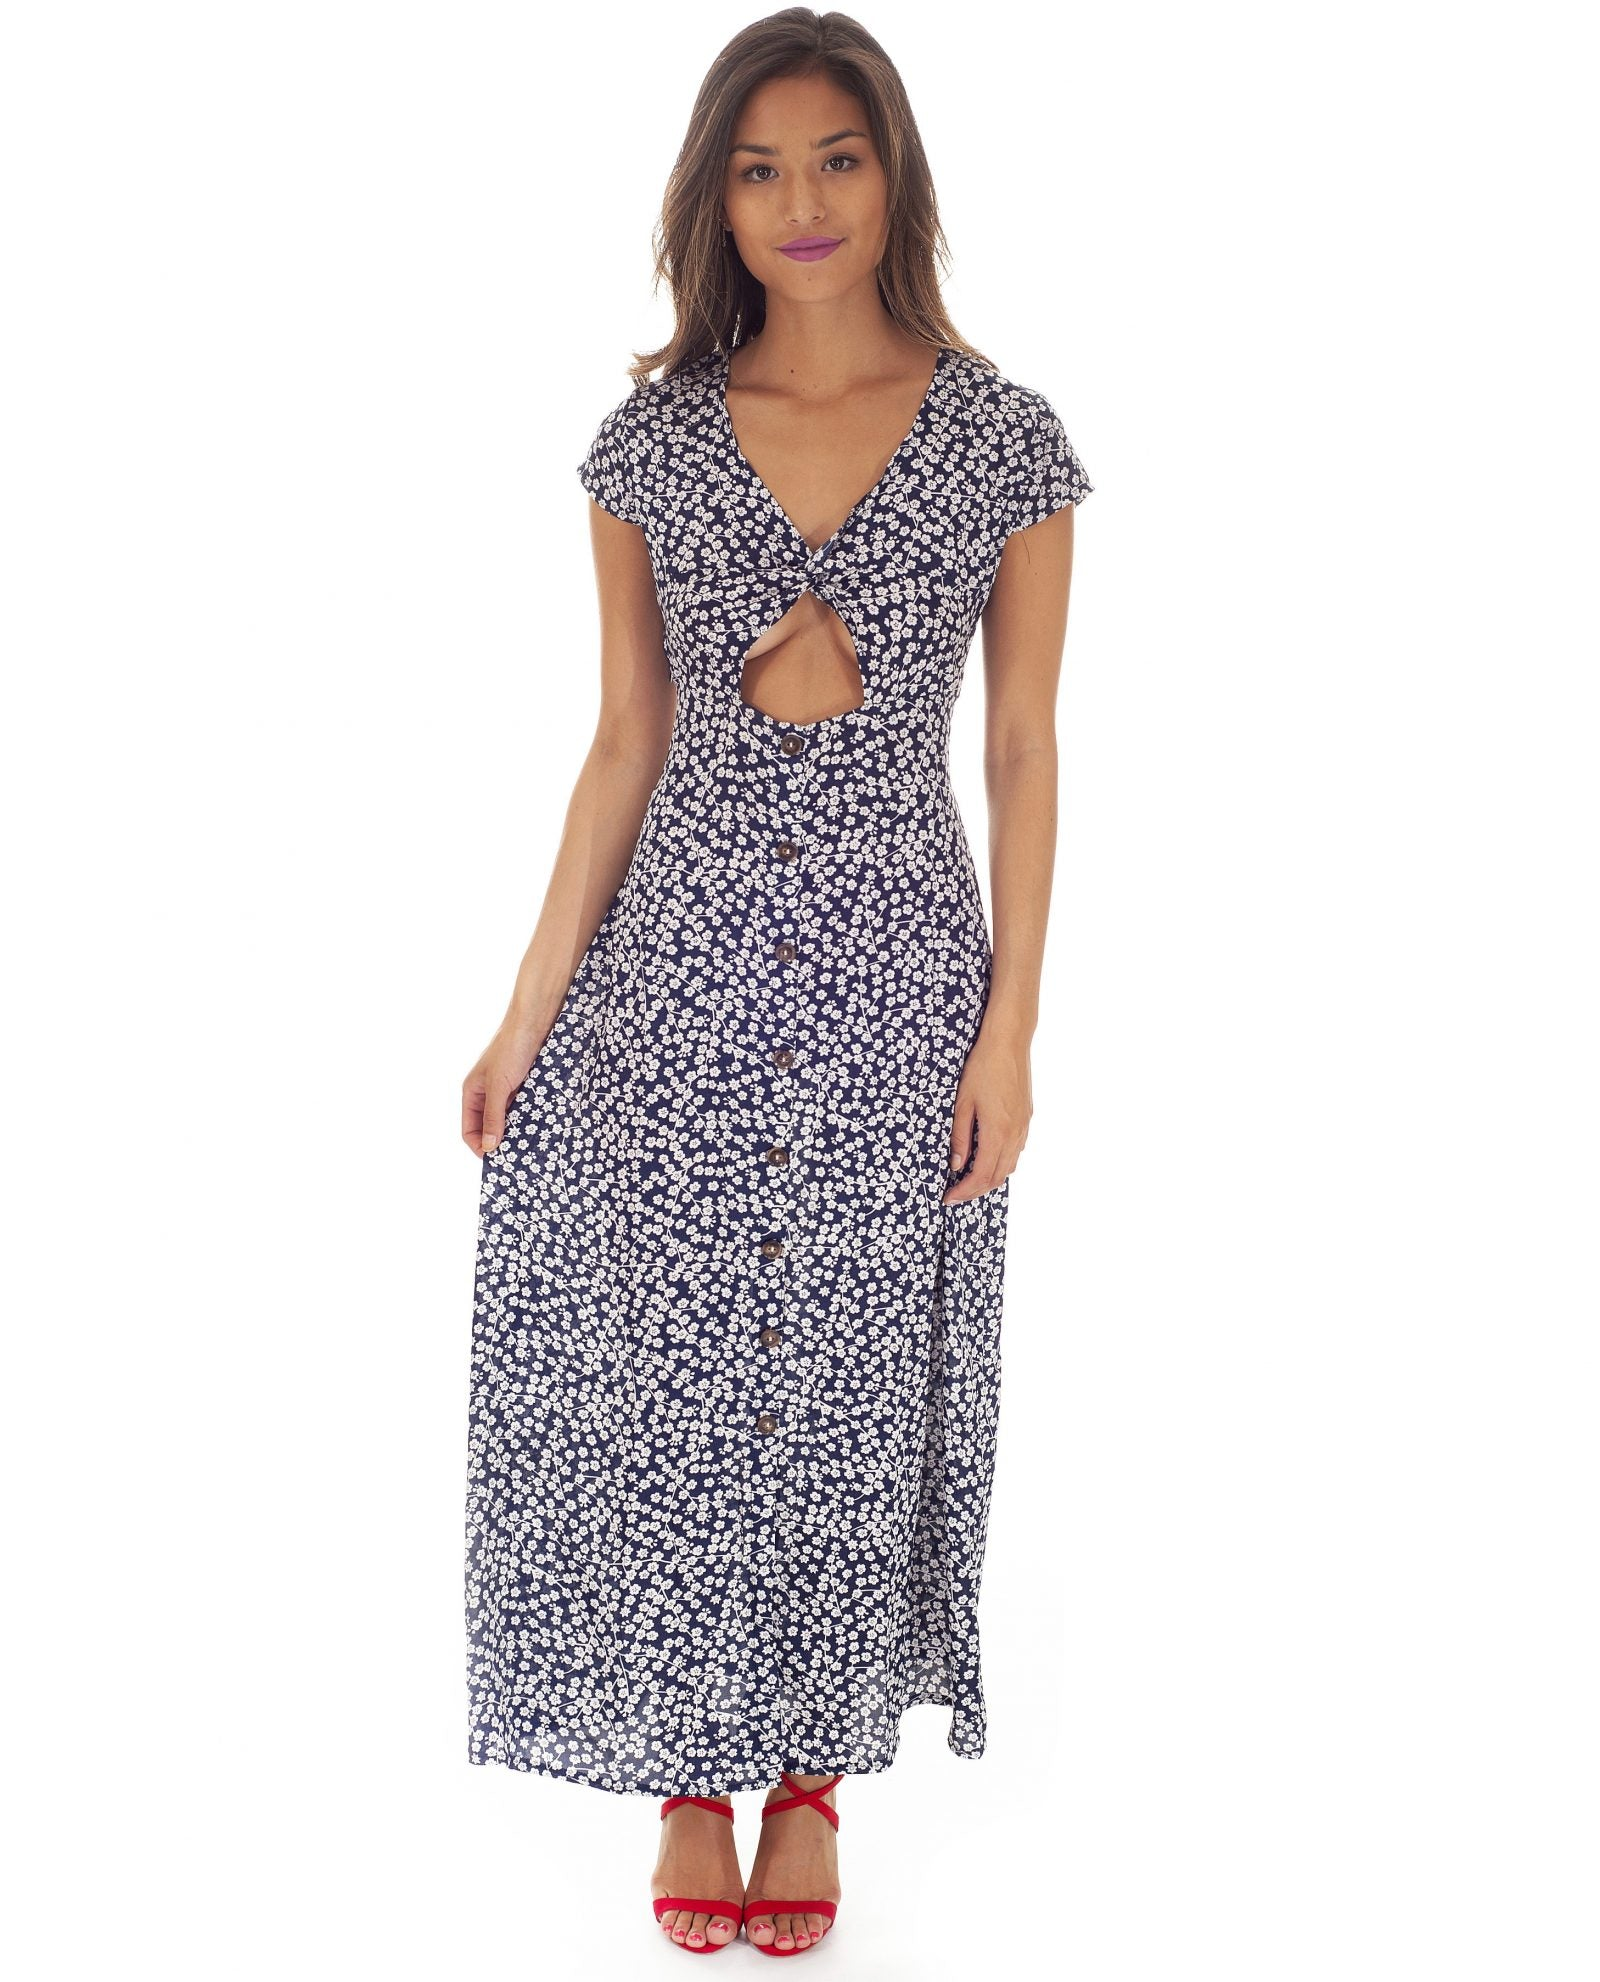 Hire Blue & White Polka Dot Maxi | Hirestreetuk.com